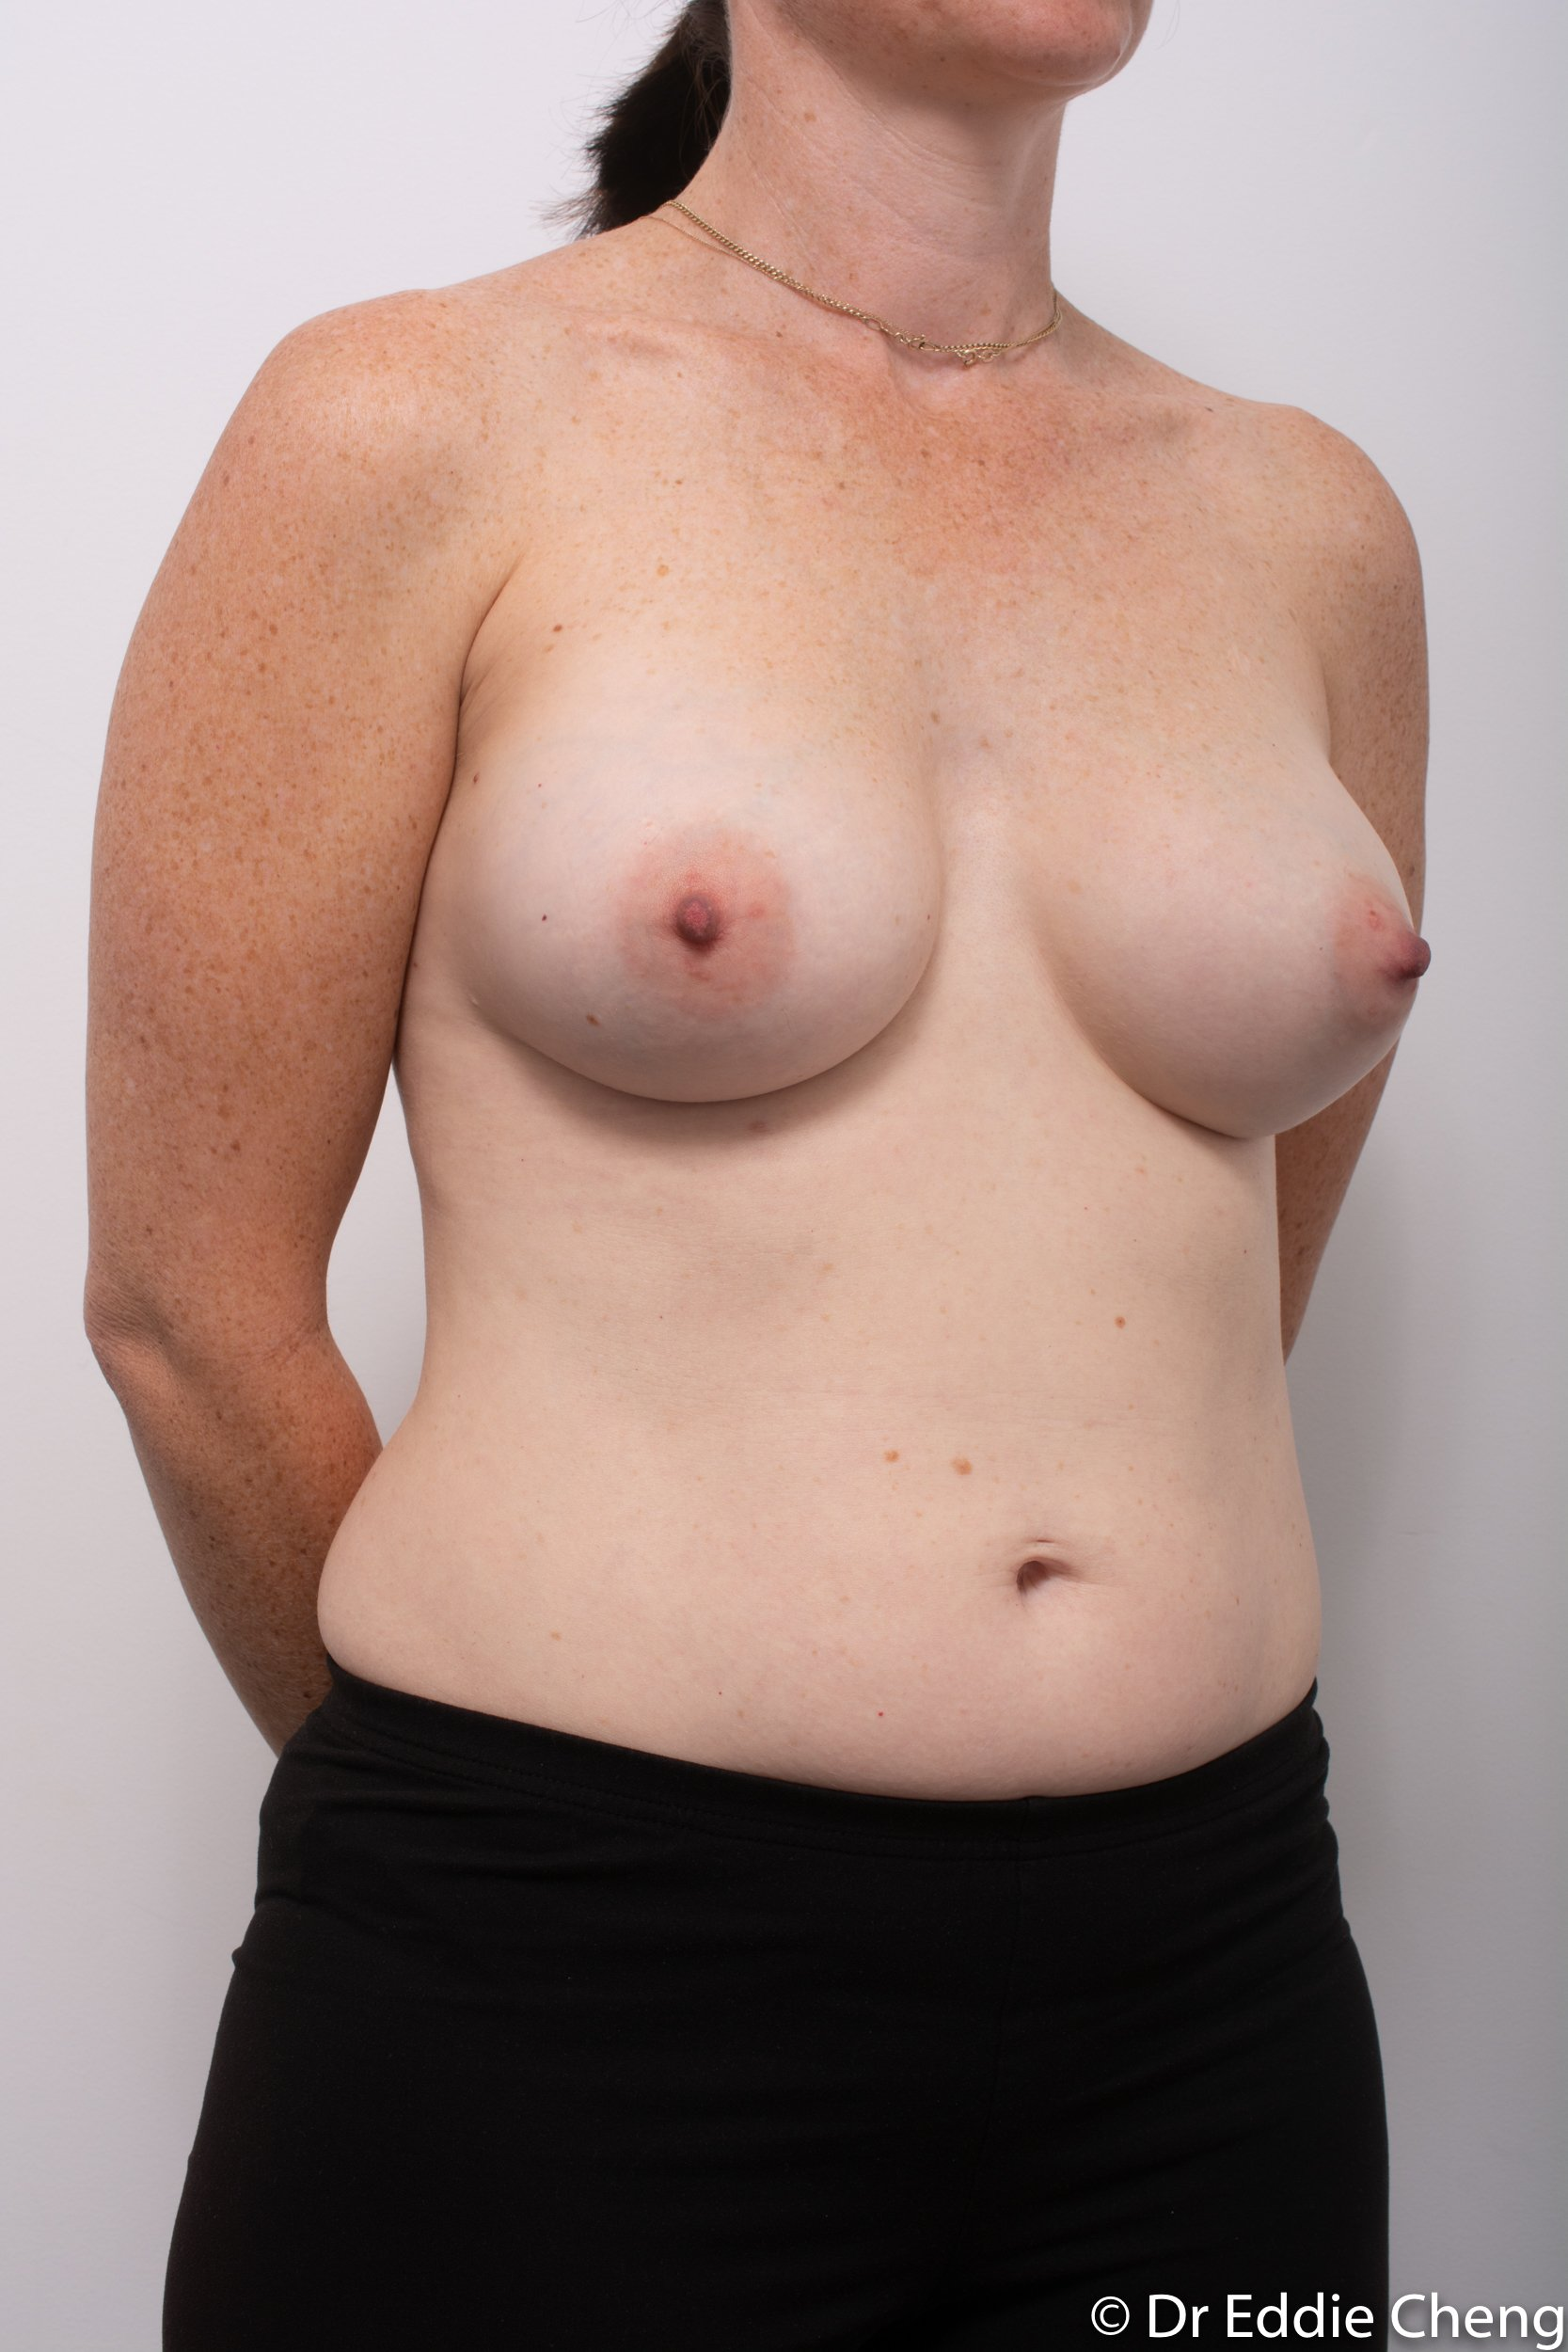 removal of implants or explant surgery dr eddie cheng brisbane-2